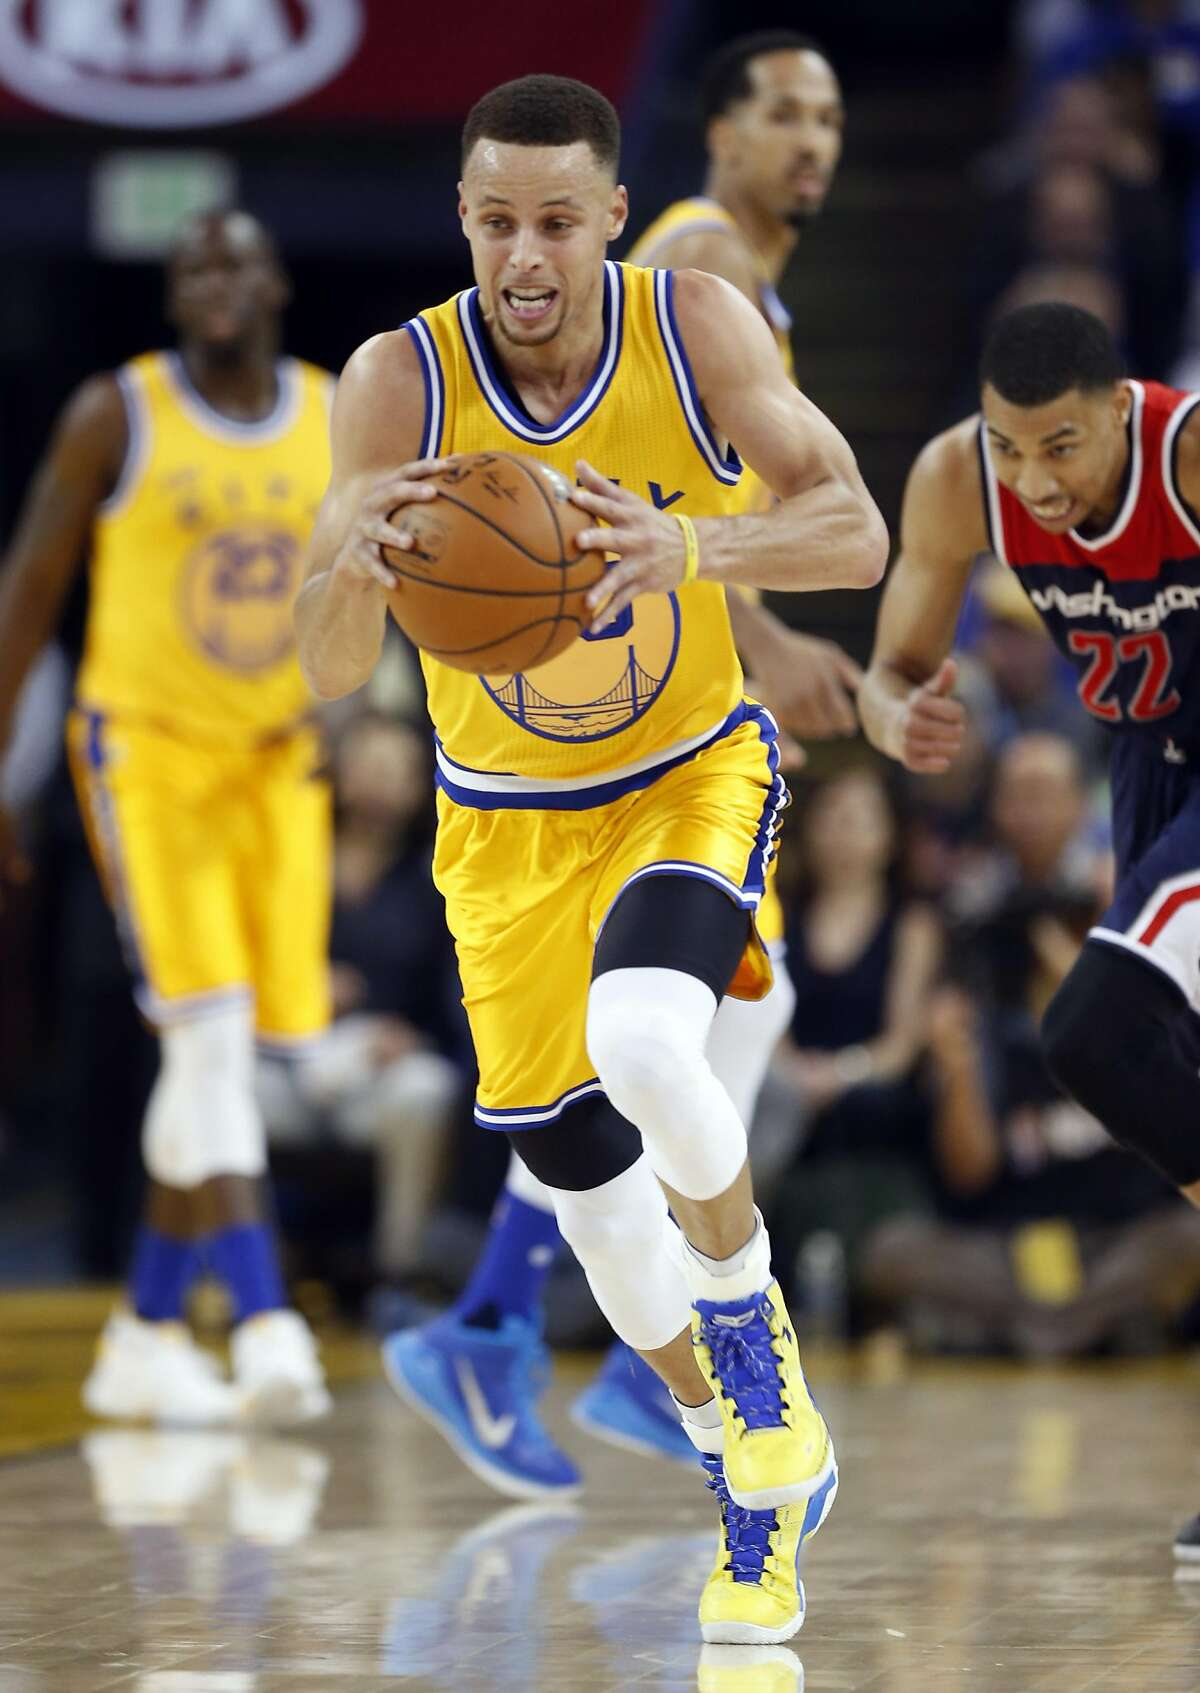 Golden State Warriors' Stephen Curry heads up court as Washington Wizards' Otto porter trails in 2nd quarter during NBA game at Oracle Arena in Oakland, Calif., on Tuesday, March 29, 2016.